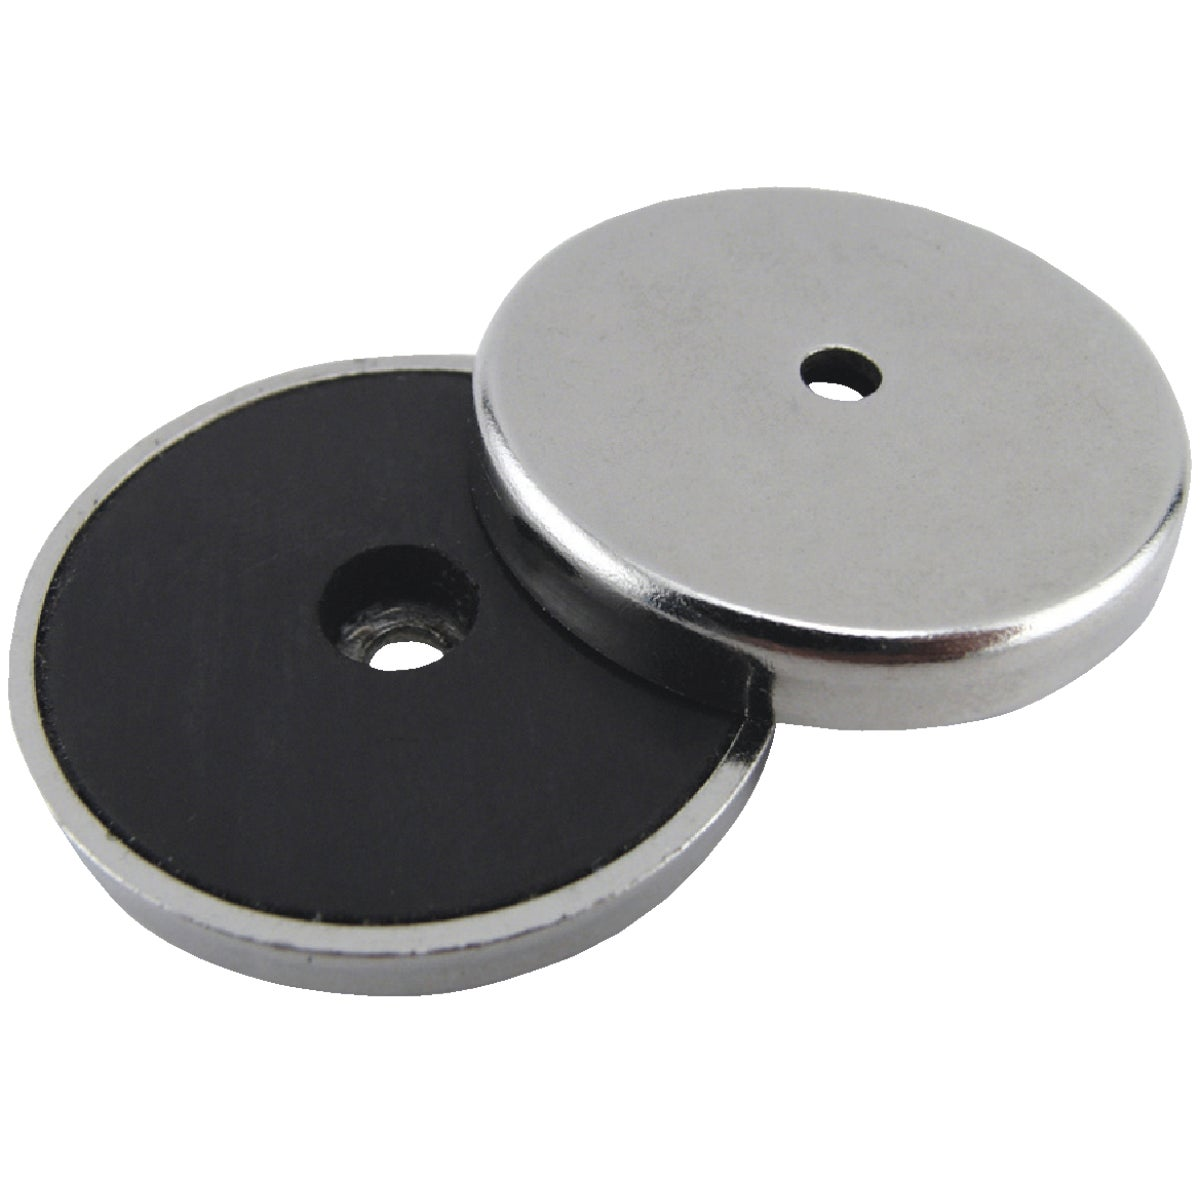 "1-3/16"" MAGNETIC BASE - 07515 by Master Magnetics"